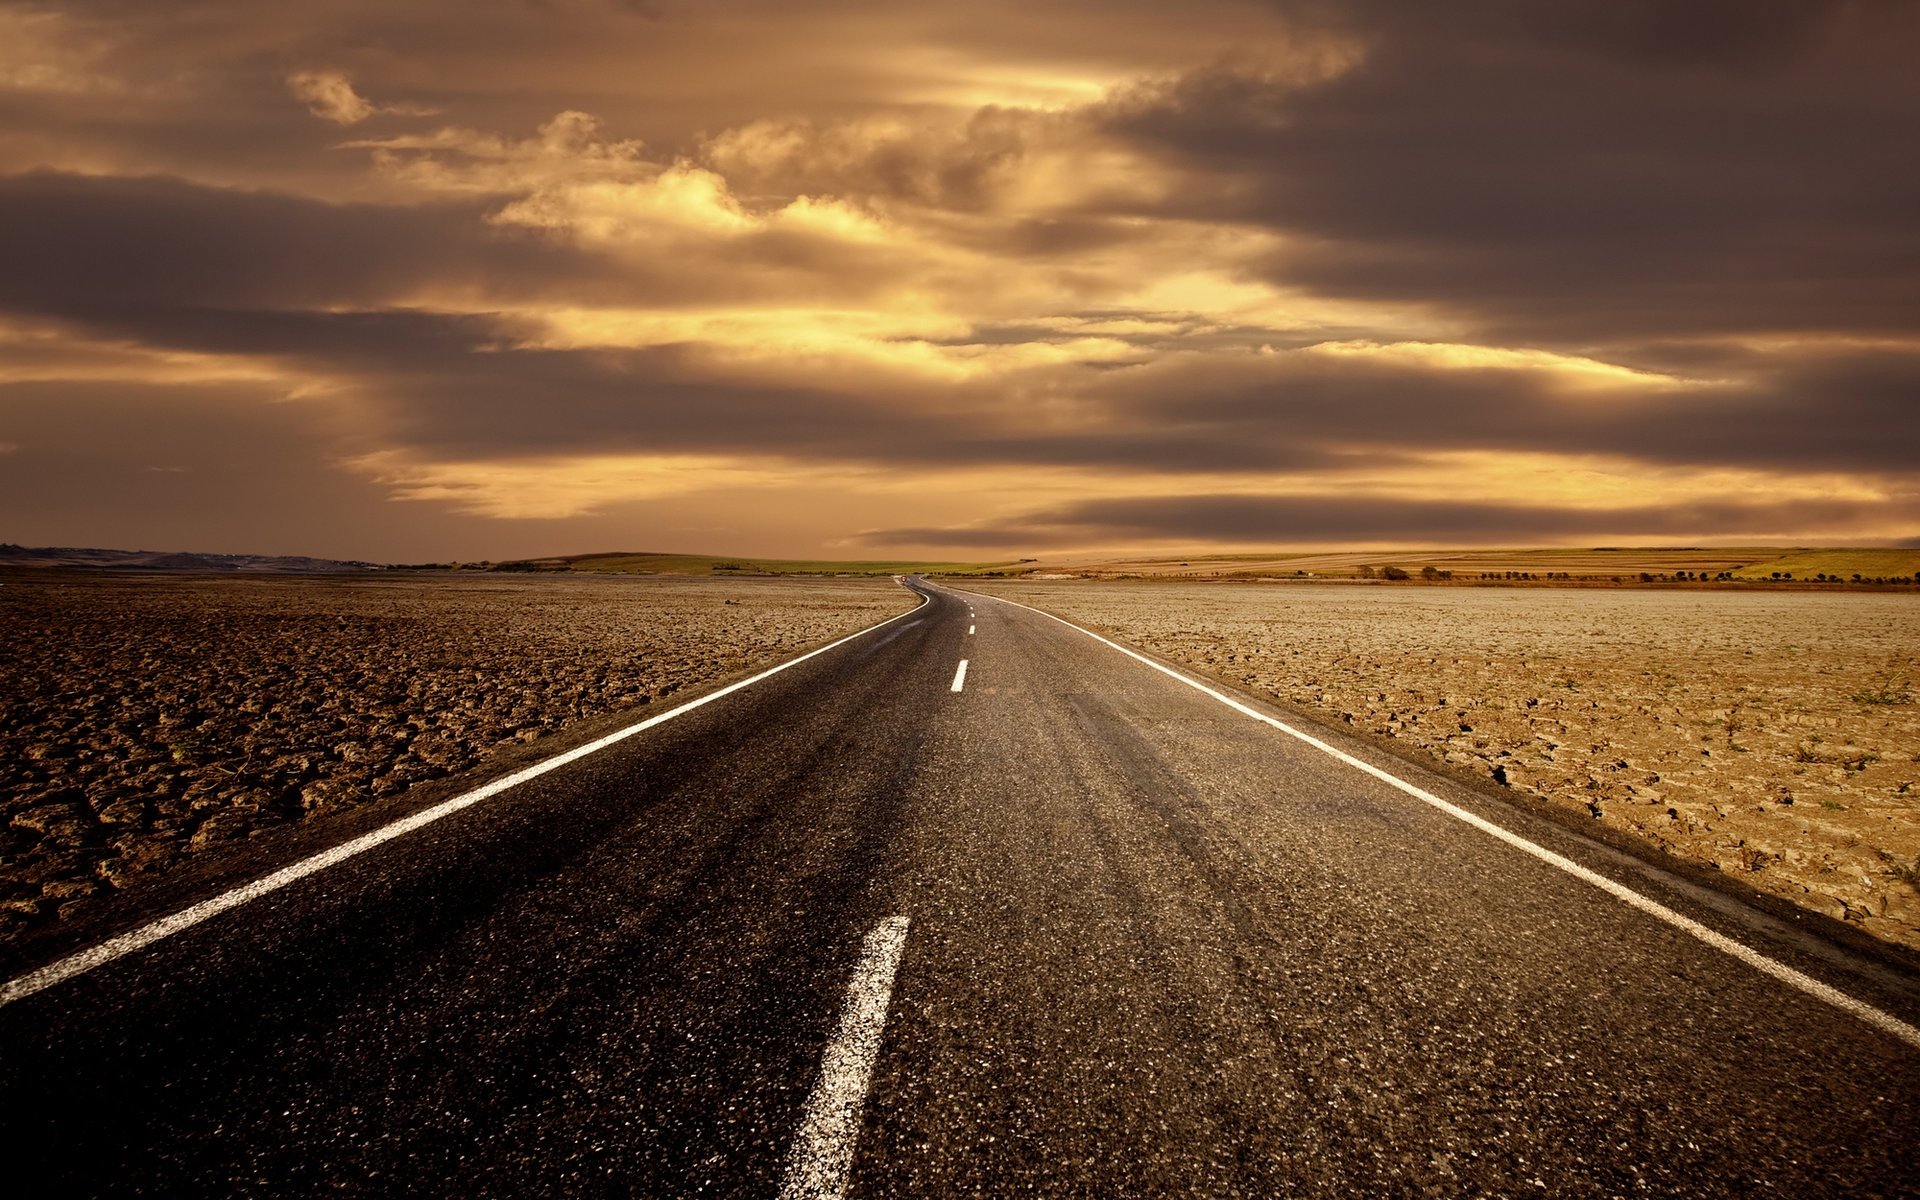 Road Wallpapers Artistic Hq Road Pictures 4k Wallpapers 2019